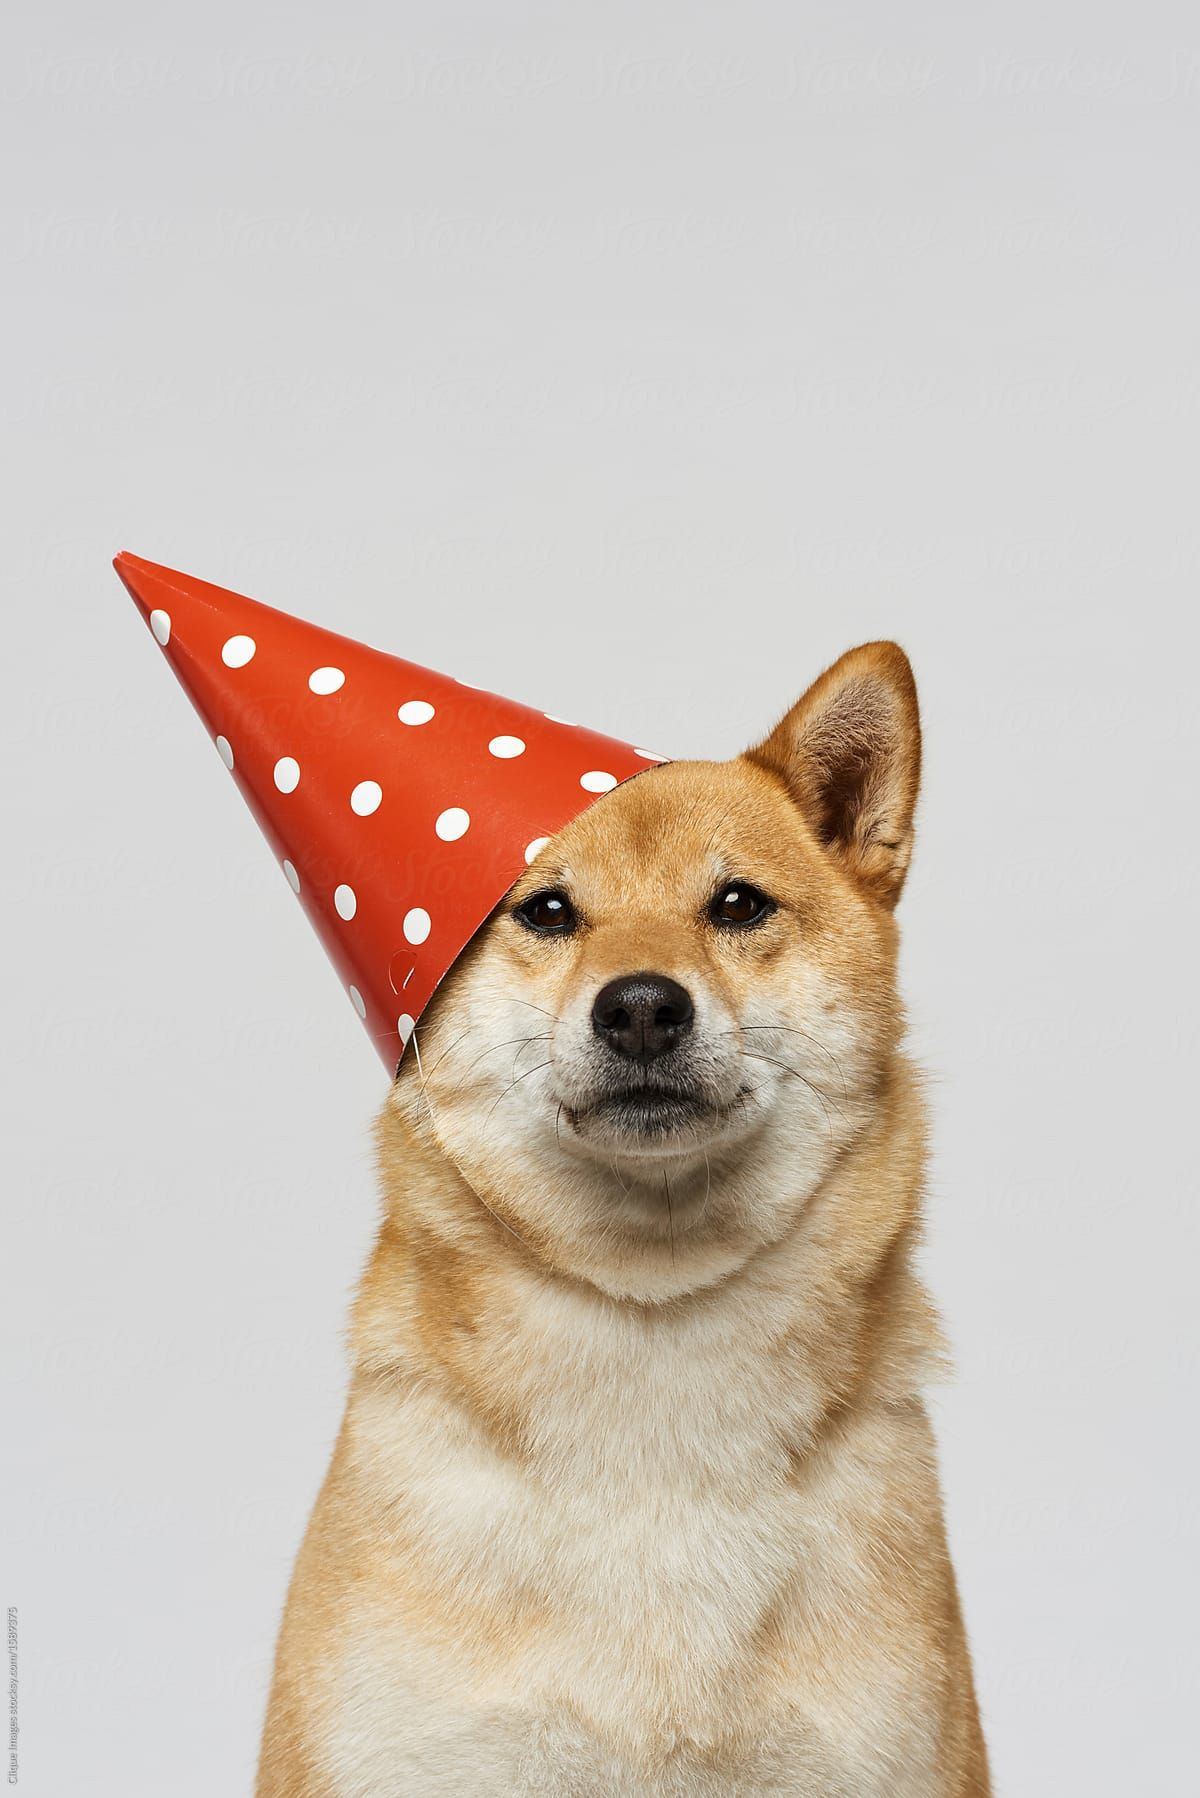 Get Ready For Crazy Party By Clique Images For Stocksy United Cute Dog Wallpaper Dog Photoshoot Dog Party